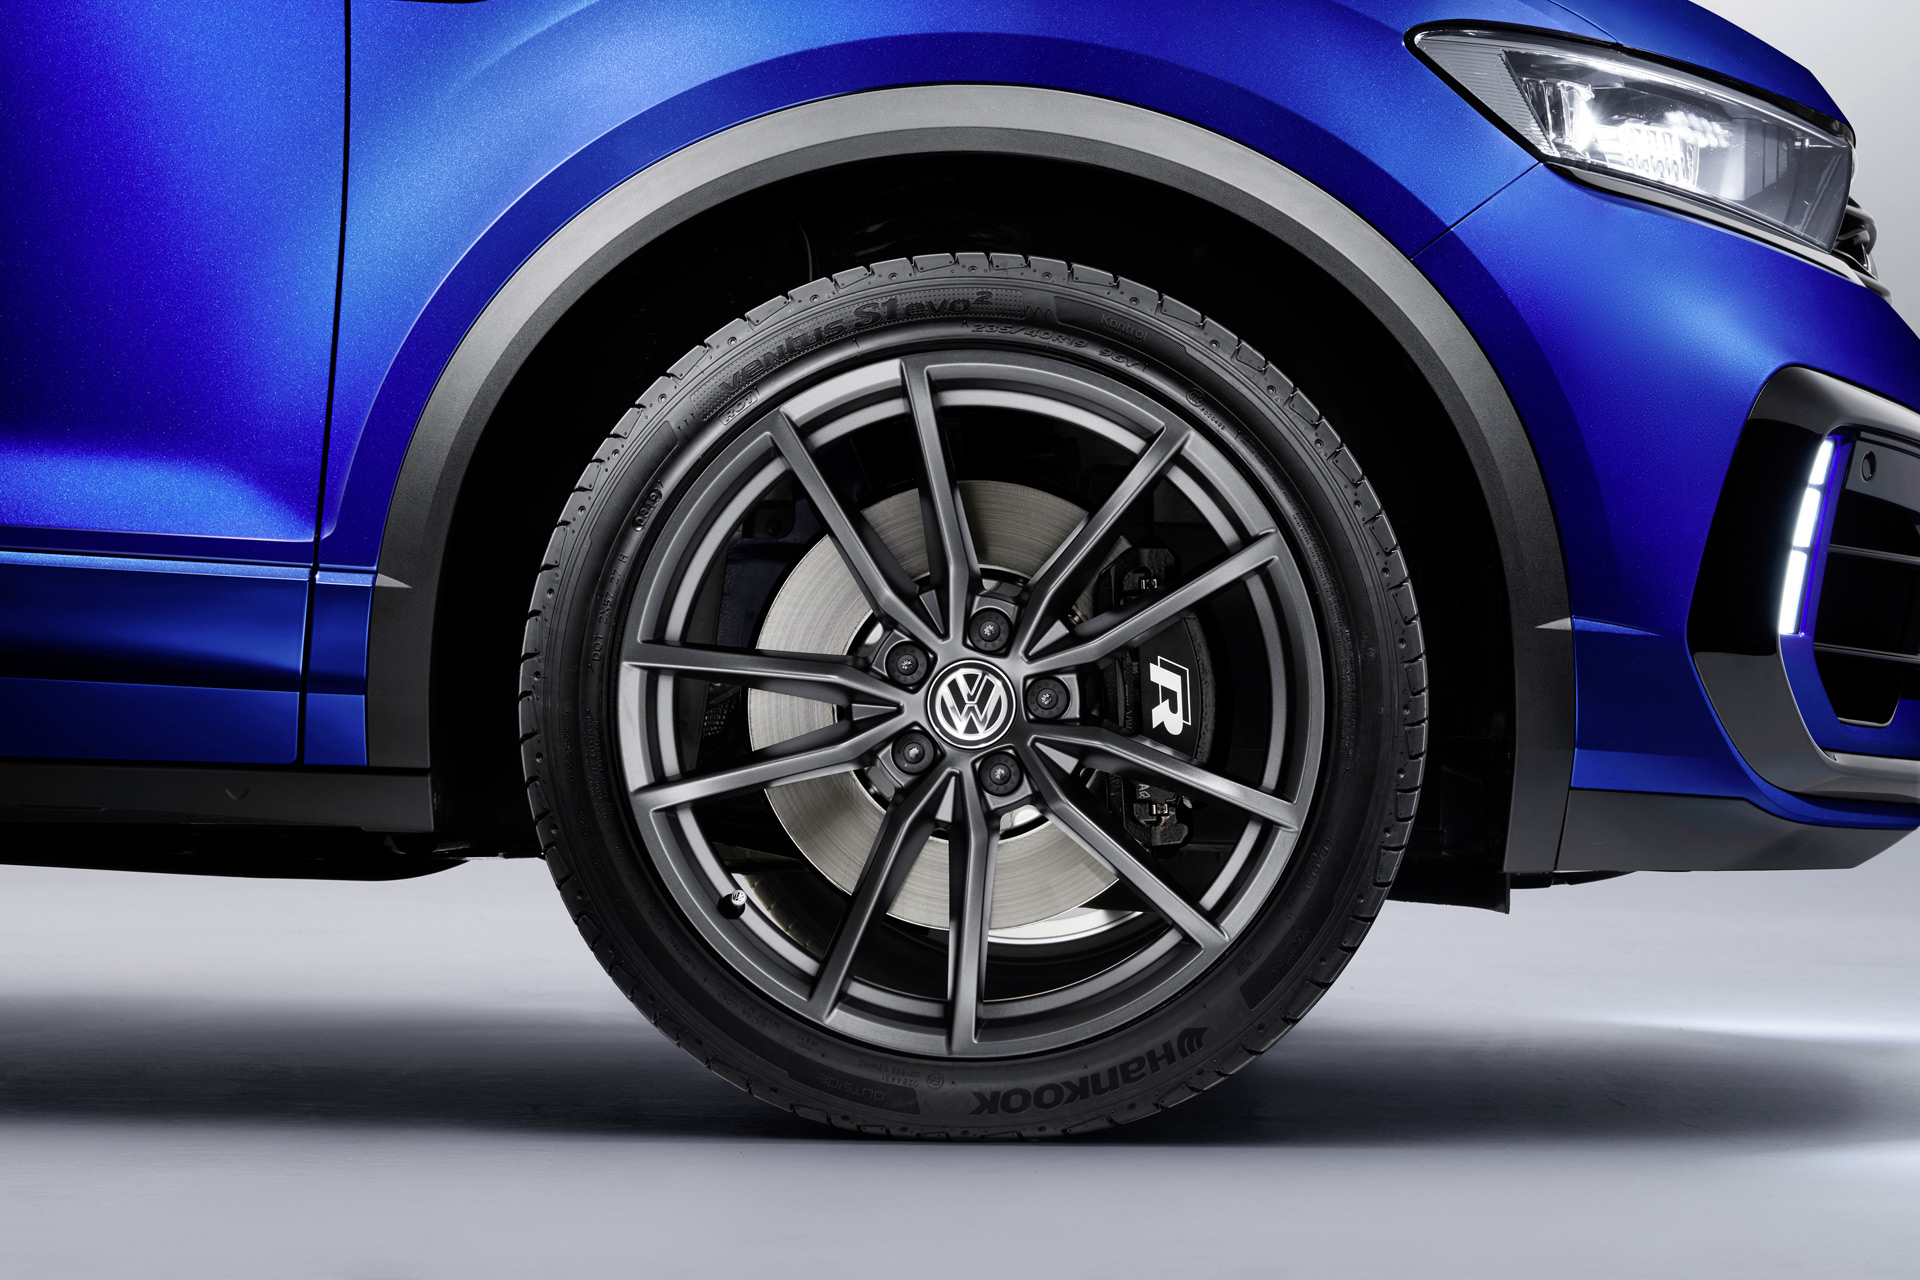 2019 Volkswagen T-Roc R Wheel Wallpaper (13)